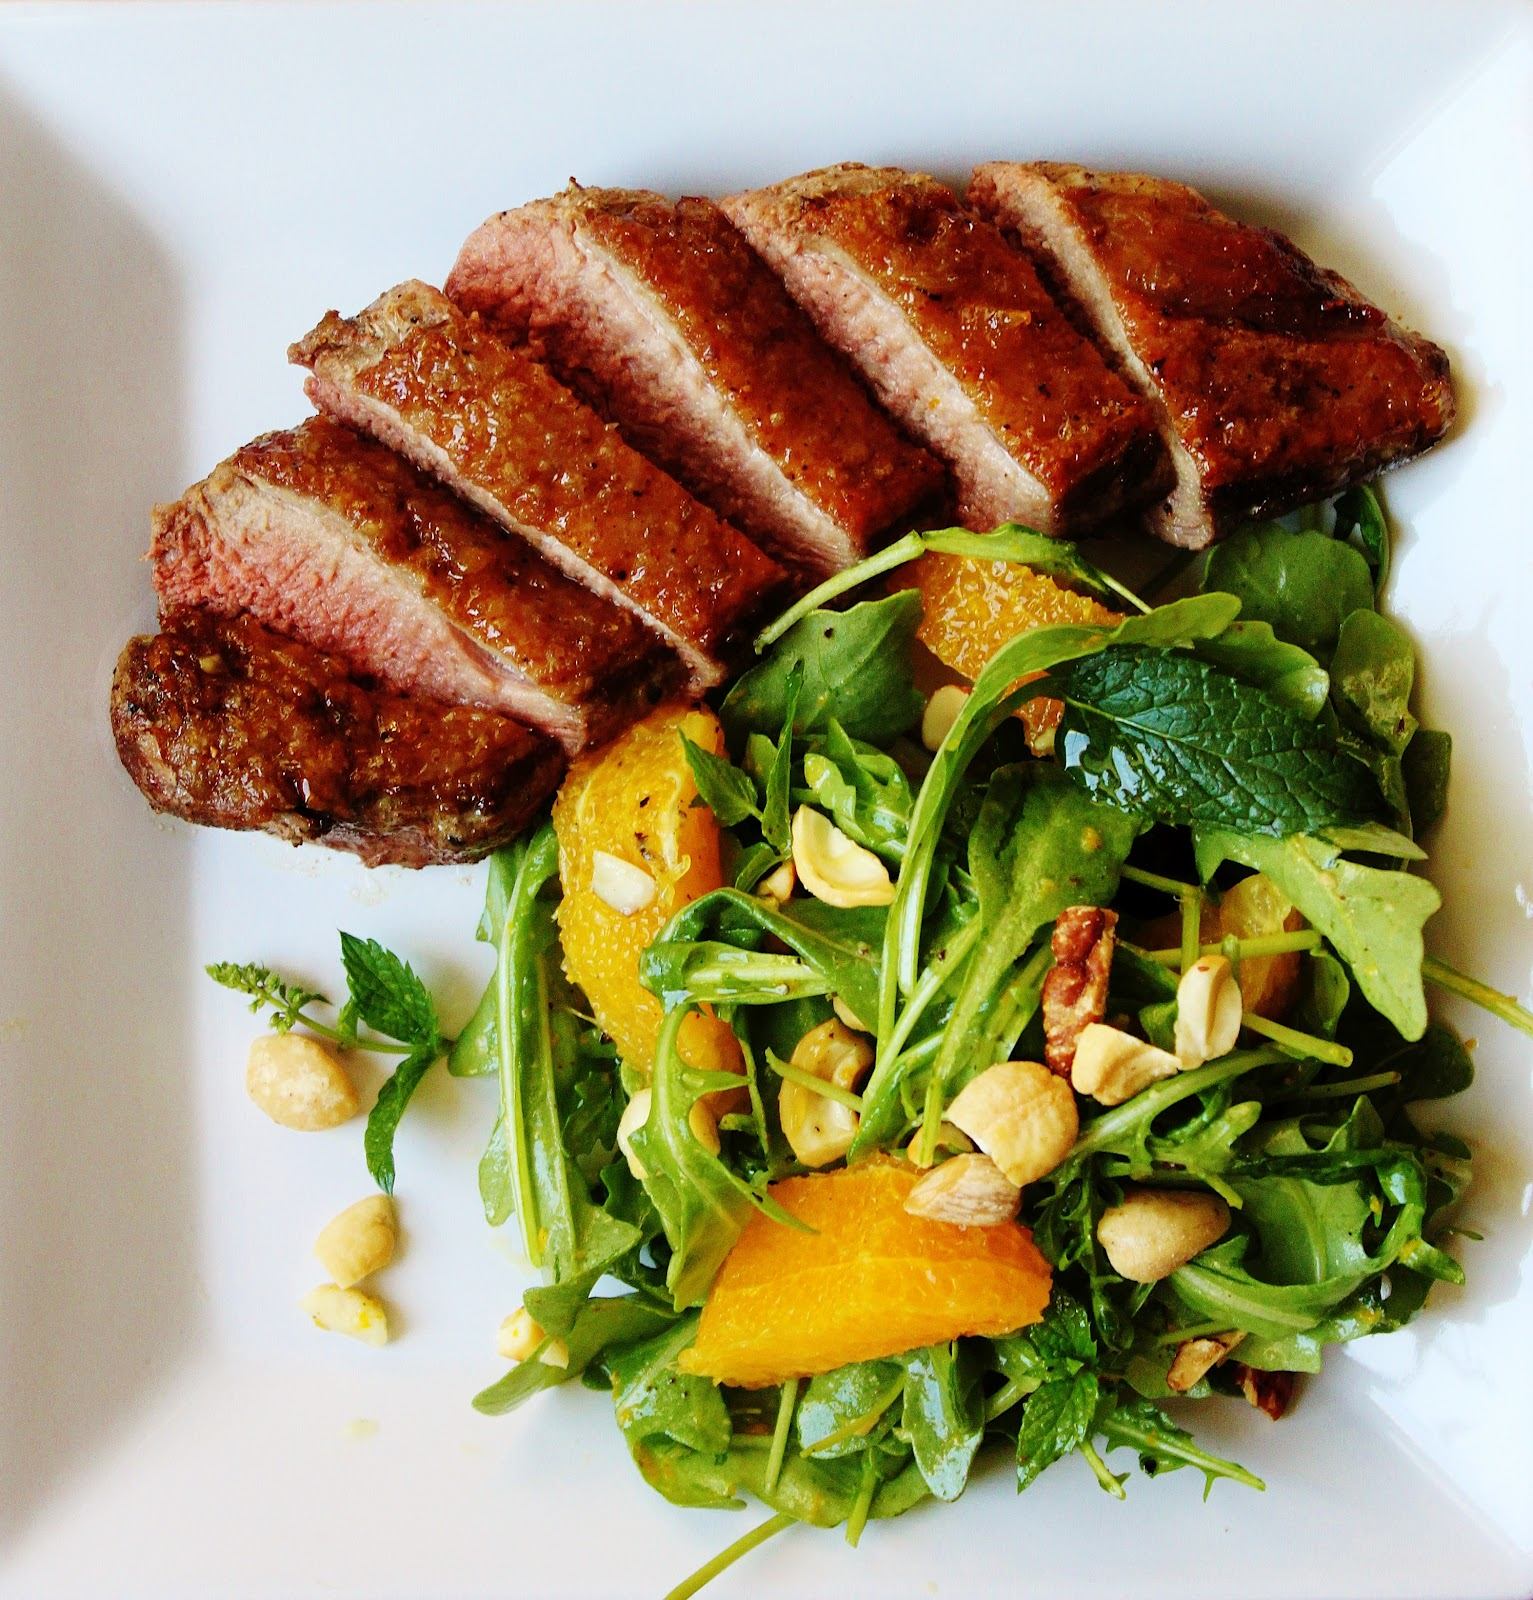 Anise Yuzu-Roasted Duck Breast with Orange Mint Salad | My ...